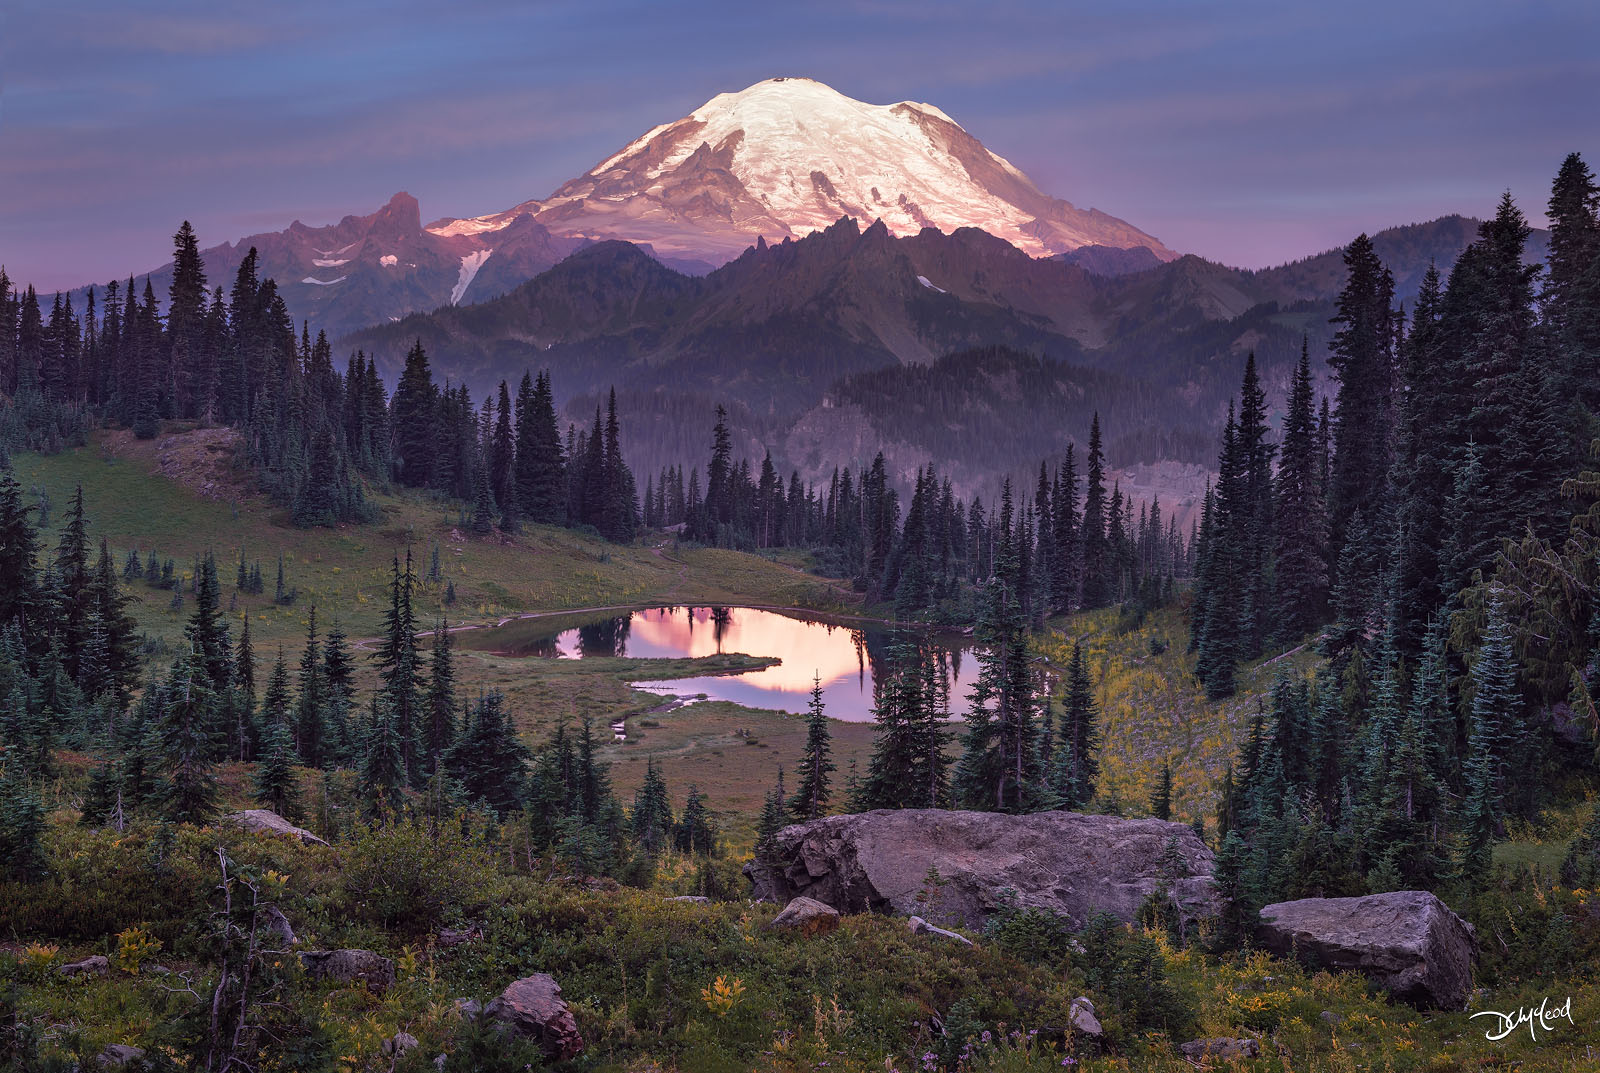 The peak of Mount Rainier in Washington glows at sunrise with its reflection in a small lake surrounded by spruce trees.